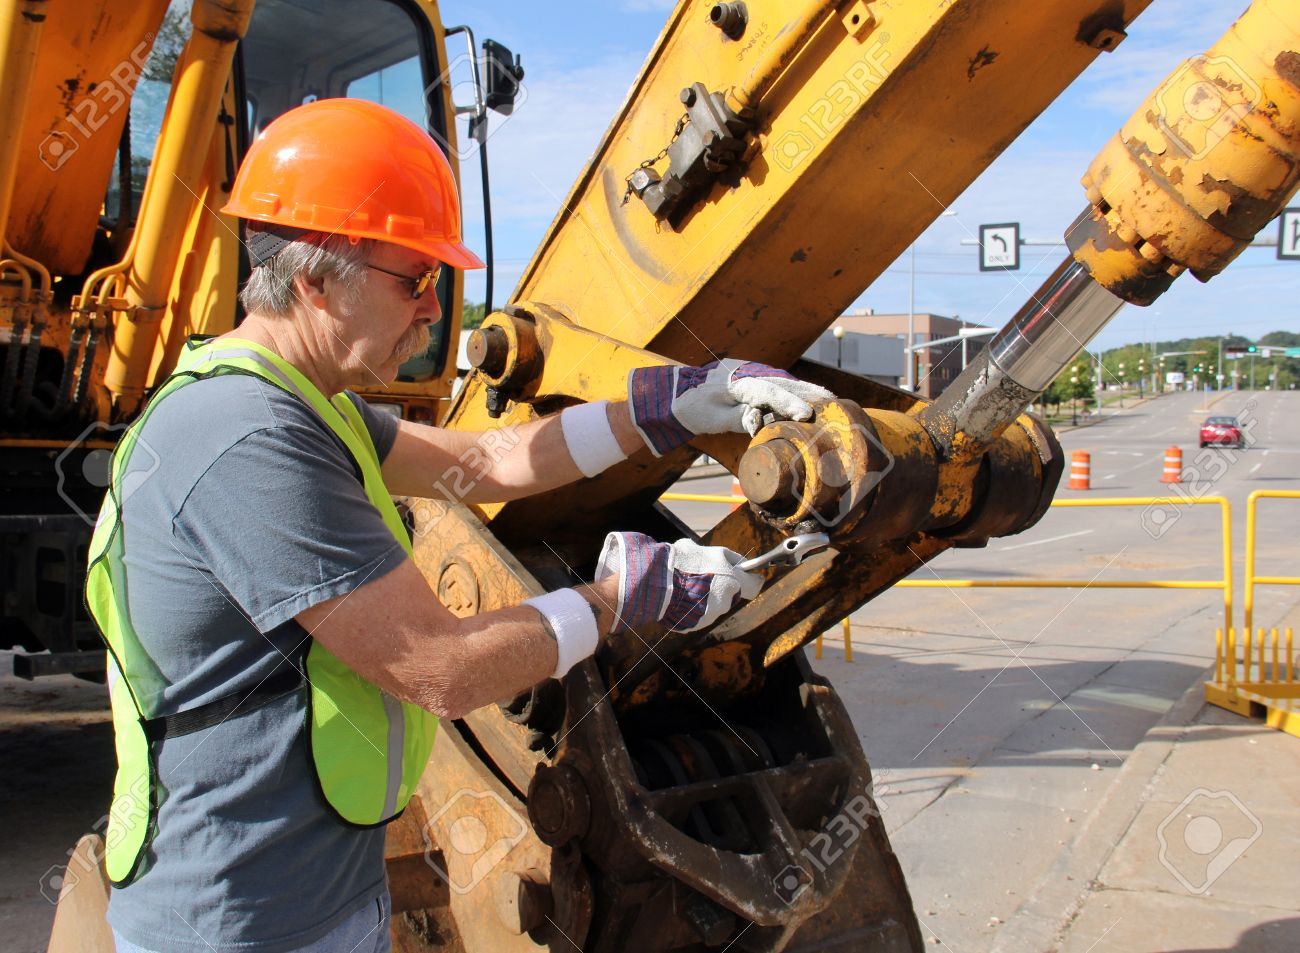 Heavy Equipment Mechanic Working With A Wrench On A Nut Stock ...